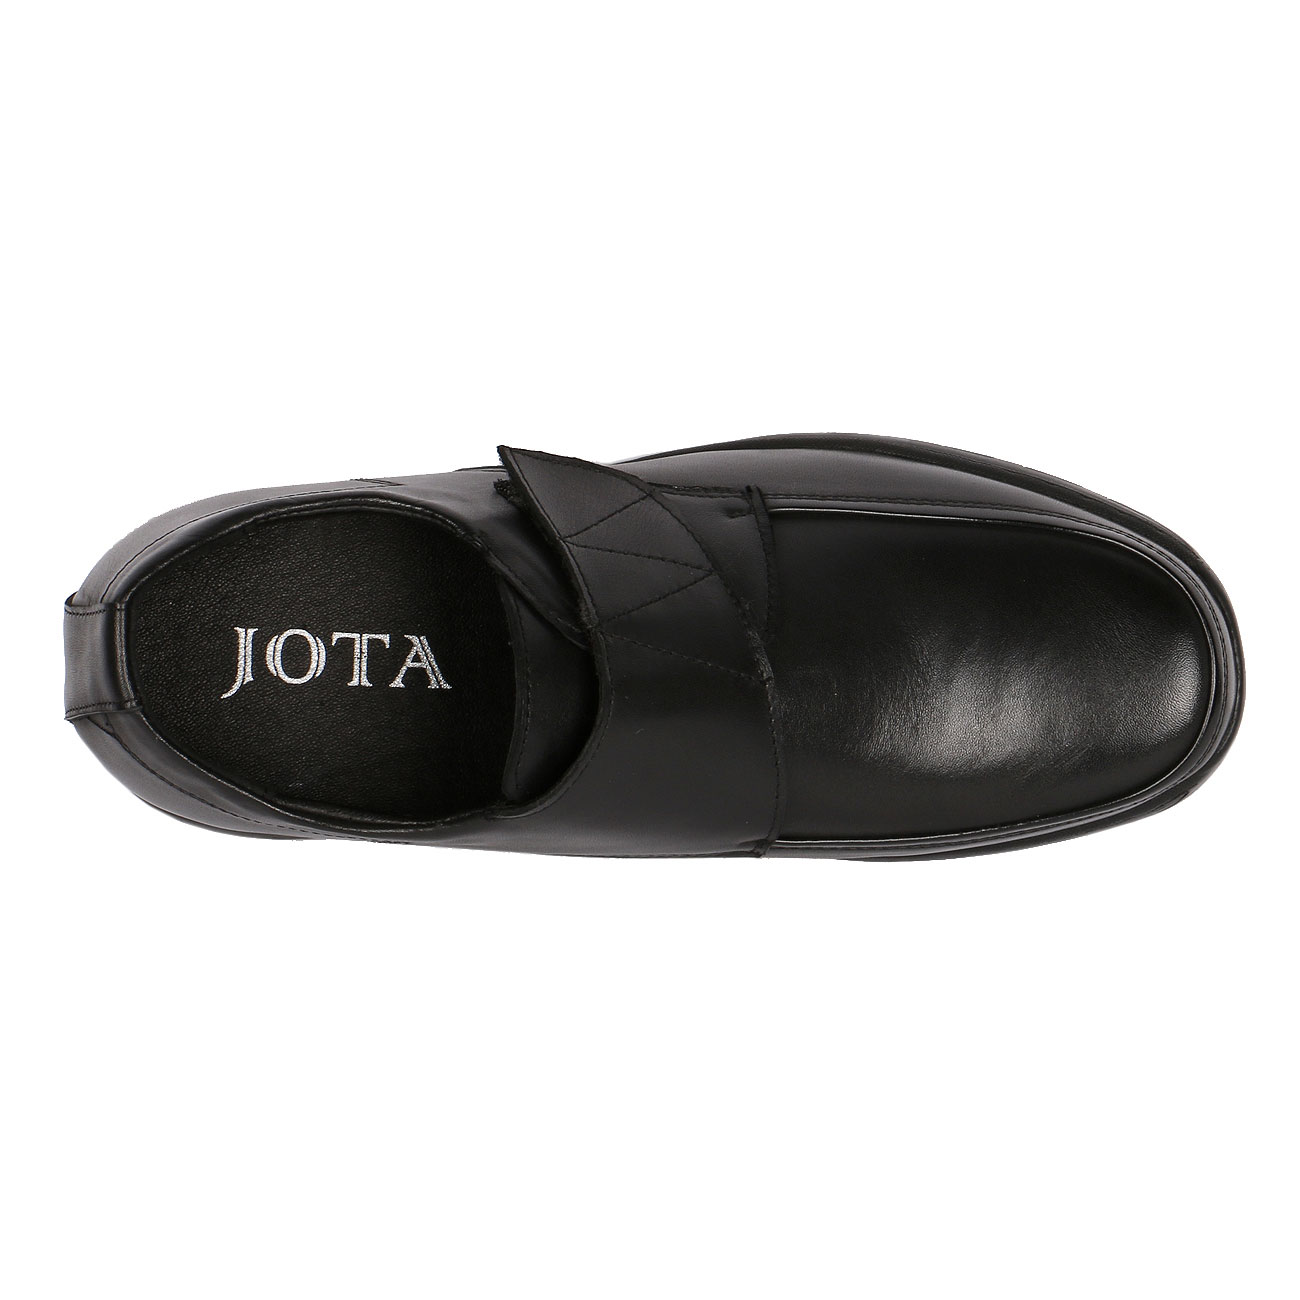 JOTA's Semi Ddress & Casual Velcro Height Elevator Shoes, CYC91